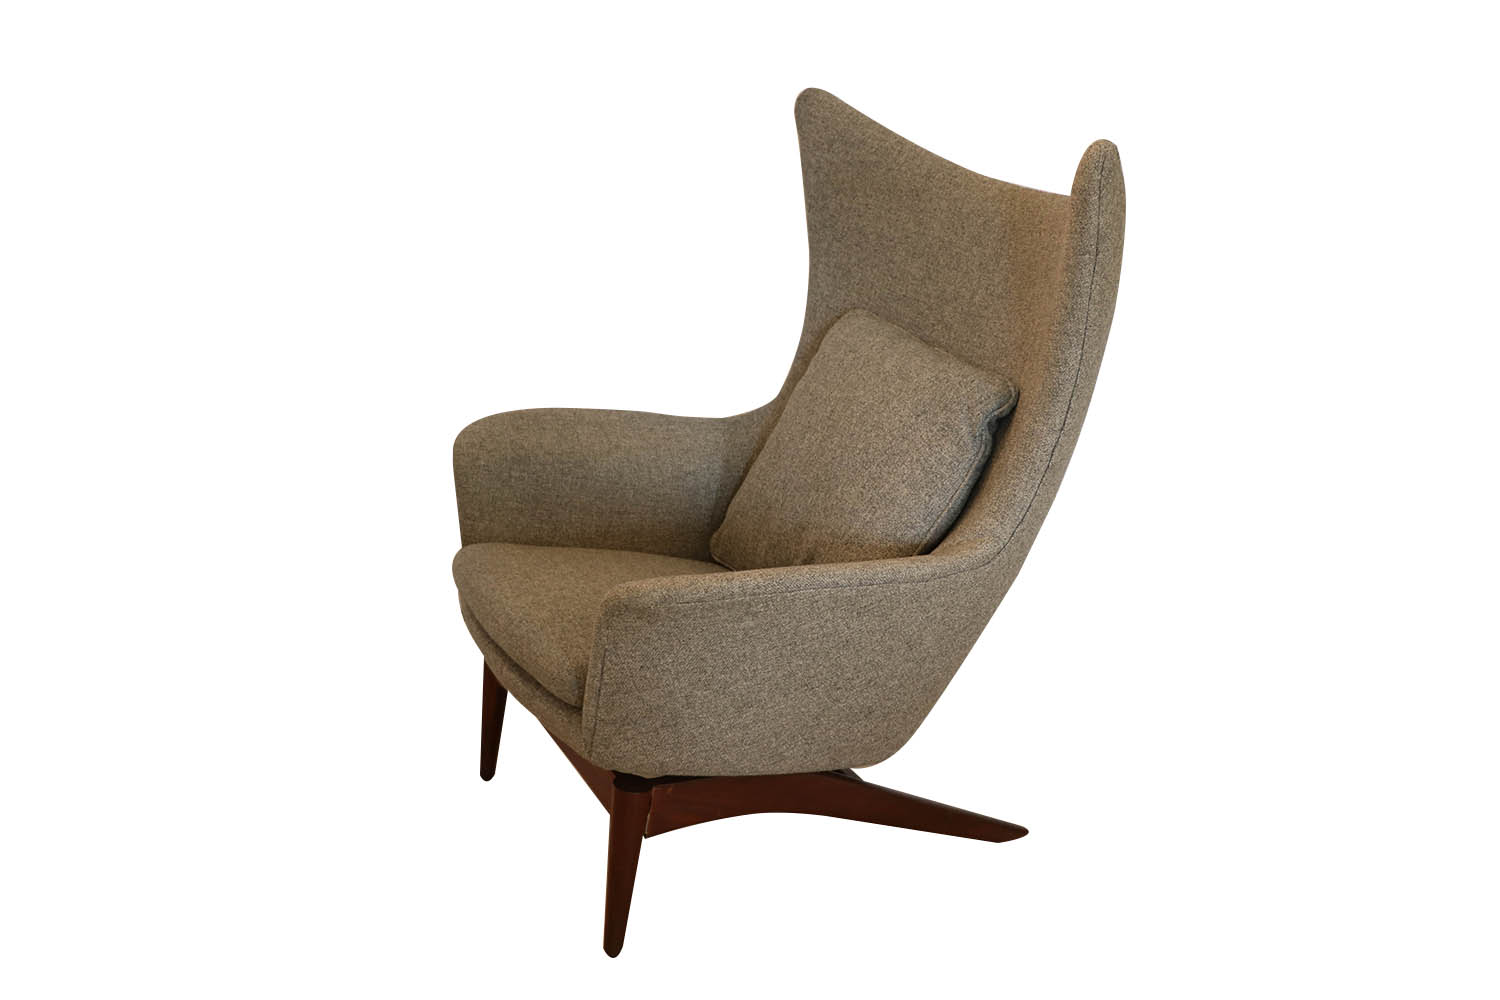 Danish Modern Lounge Chair Danish Mid Century Modern Hw Klein For Bramin Wing Lounge Chair